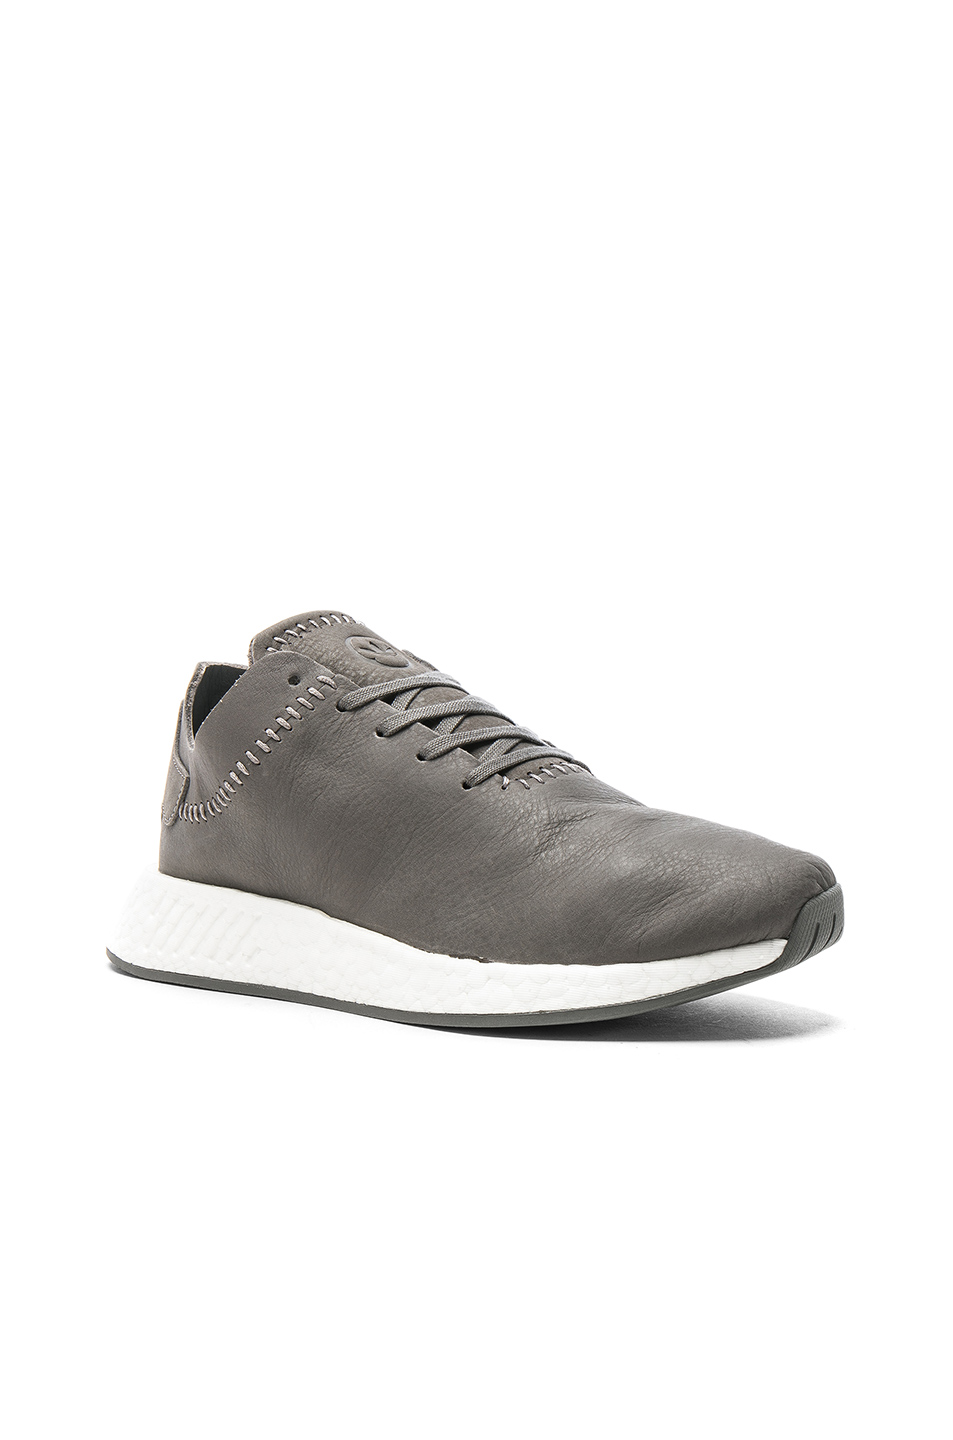 adidas by wings + horns NMD Leather in Gray